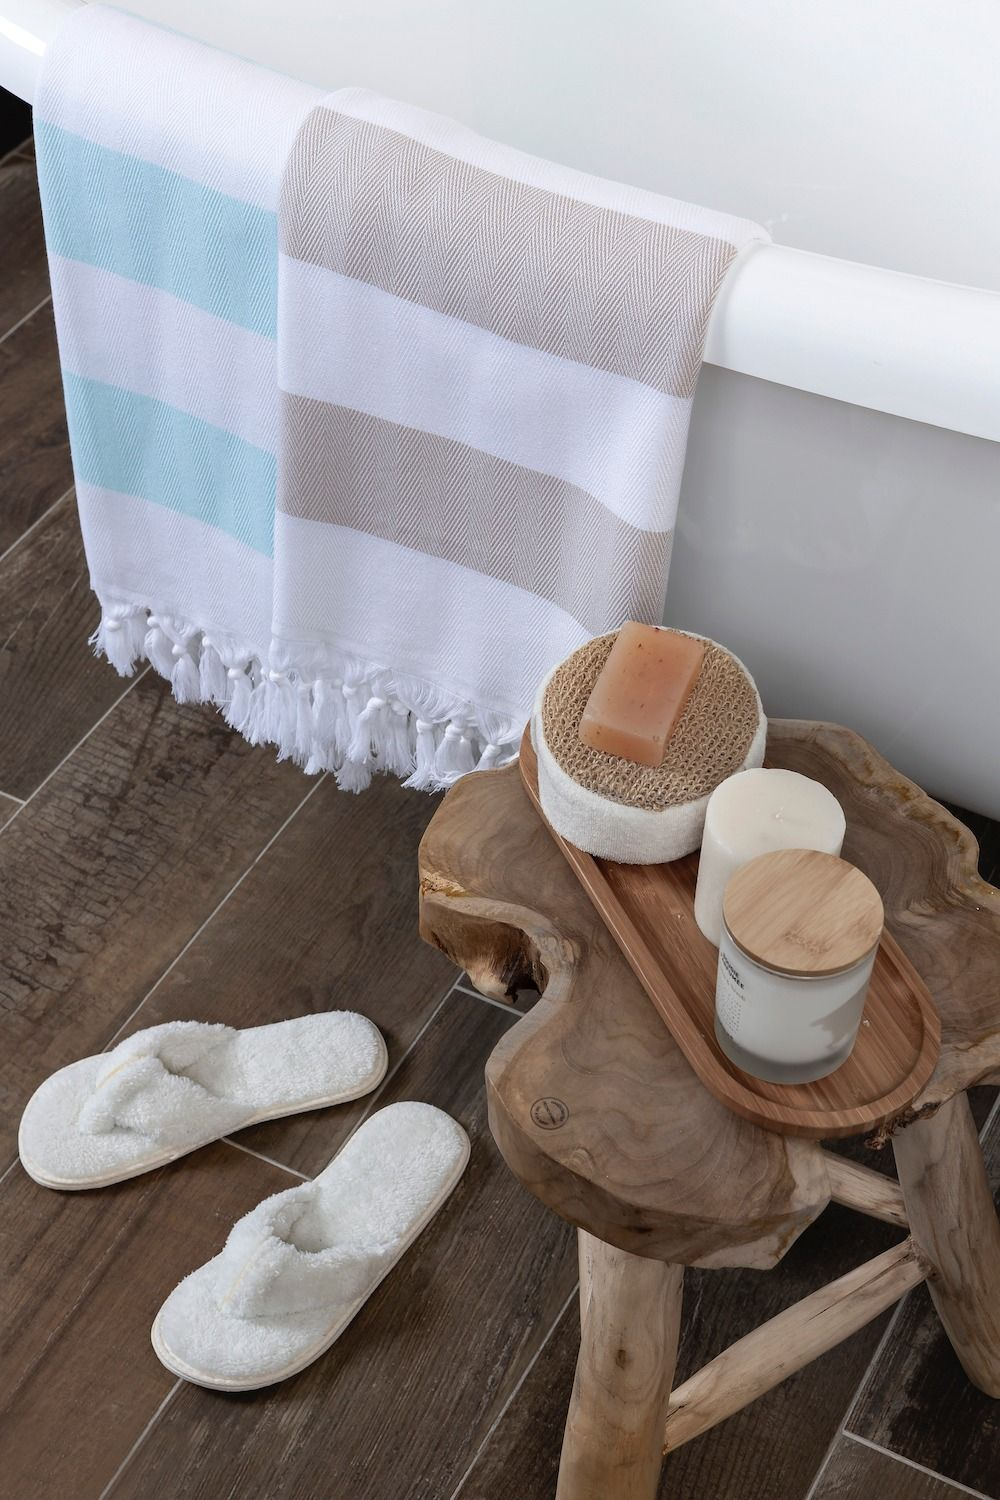 Mediterranean Cotton Turkish Bath Towel With Fringes Peshtemal